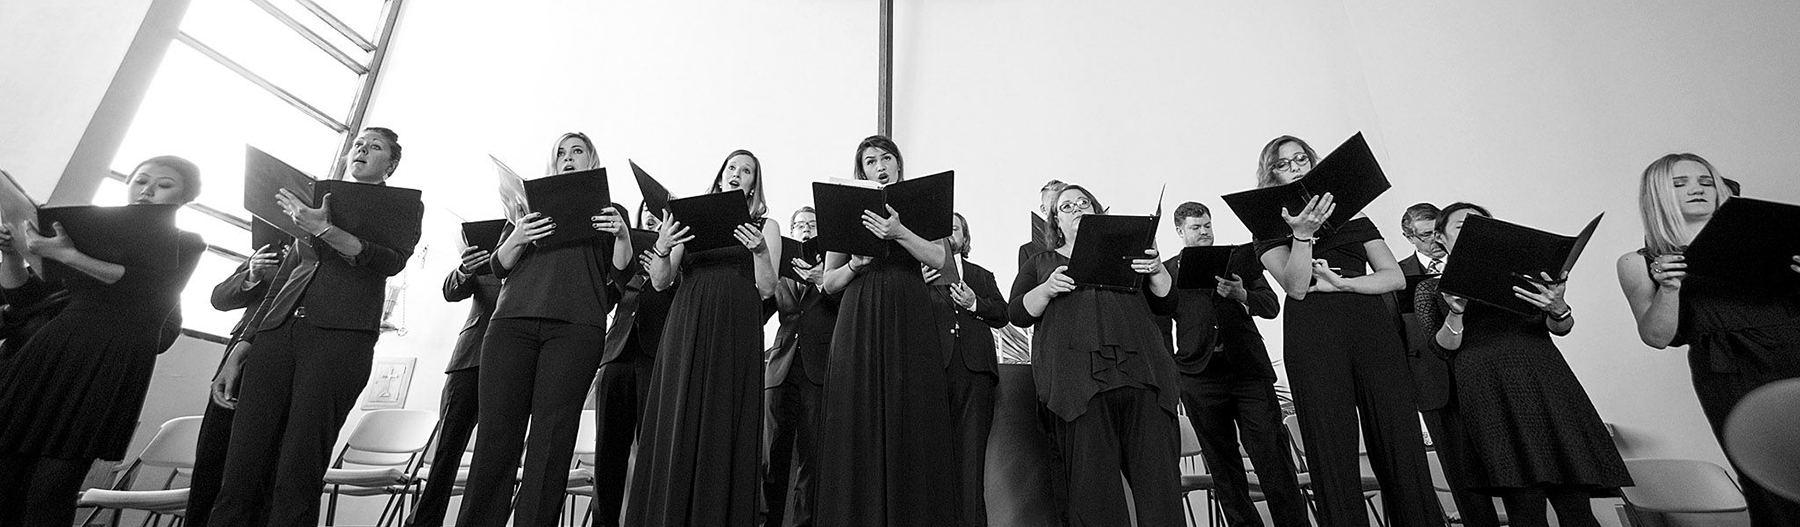 Black and white image of choral singers in church